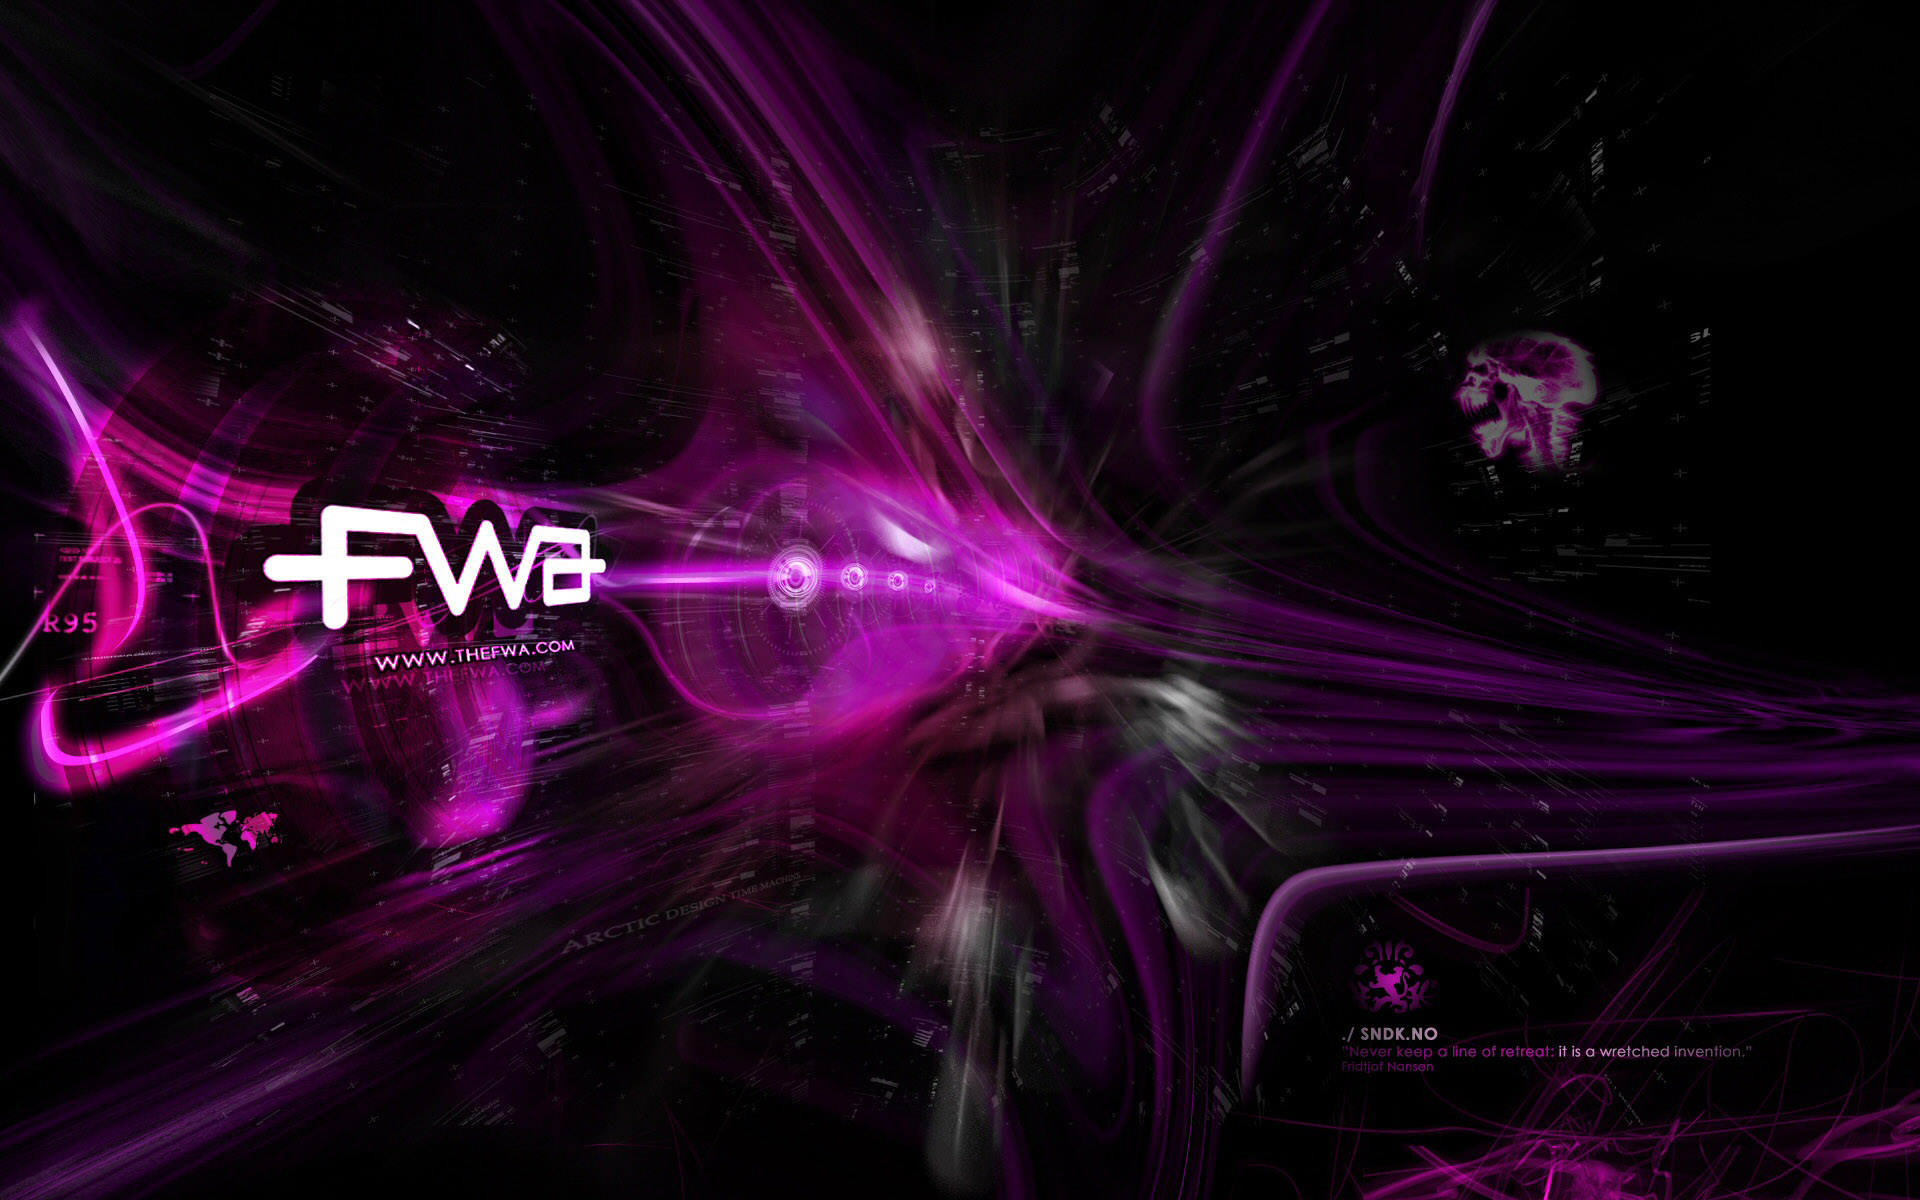 FWA wallpaper widescreen 23256